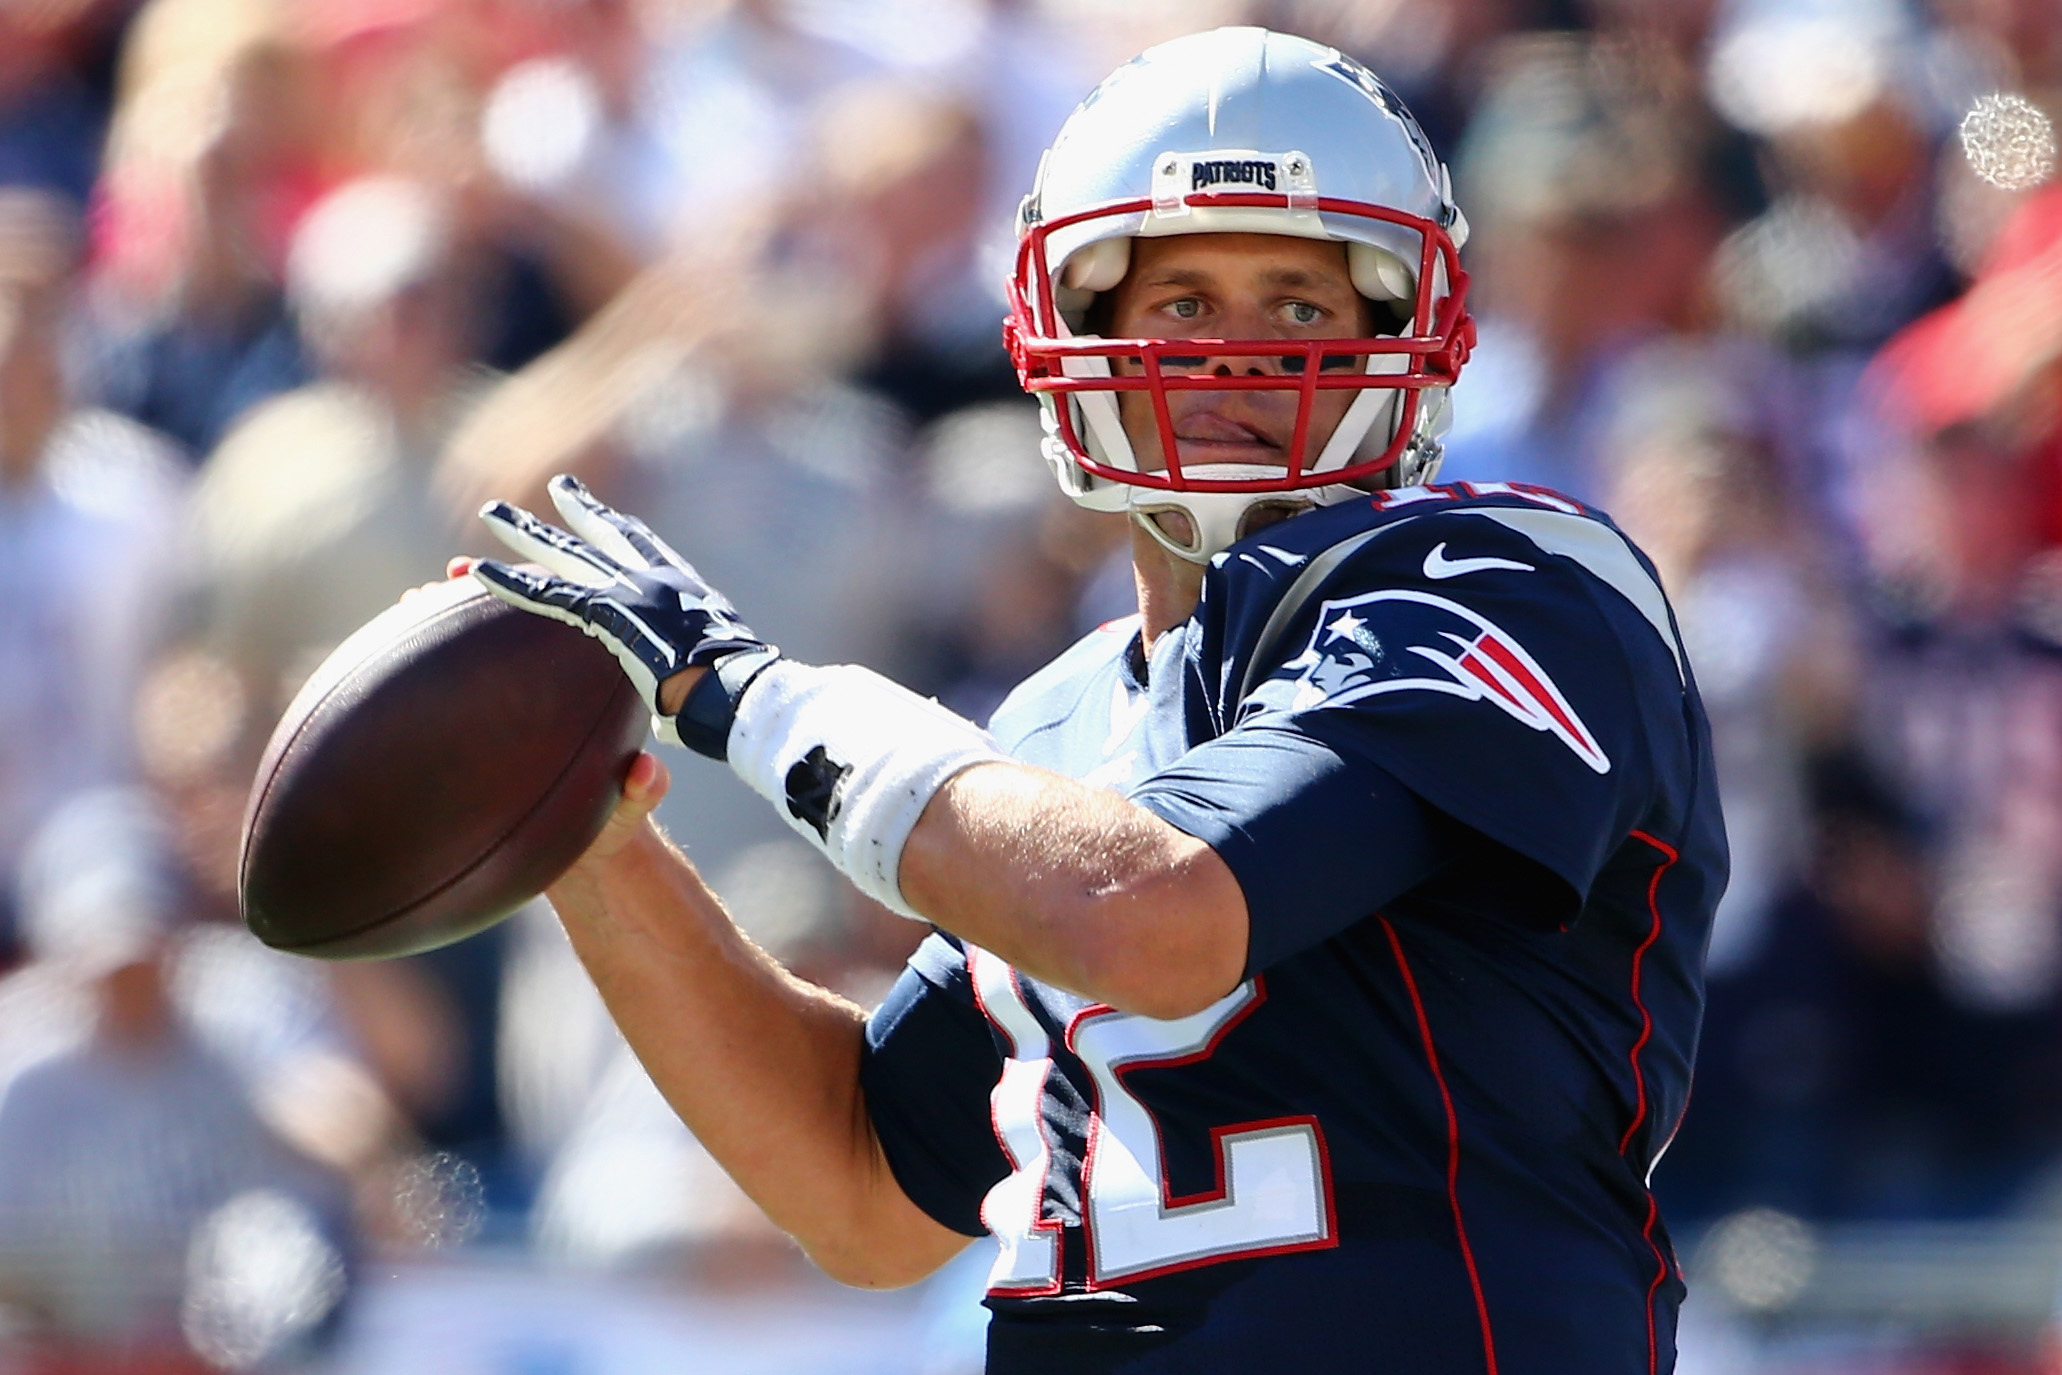 FOXBORO, MA - SEPTEMBER 27:   Tom Brady #12 of the New England Patriots makes a pass during the second quarter against the Jacksonville Jaguars at Gillette Stadium on September 27, 2015 in Foxboro, Massachusetts.  (Photo by Maddie Meyer/Getty Images)